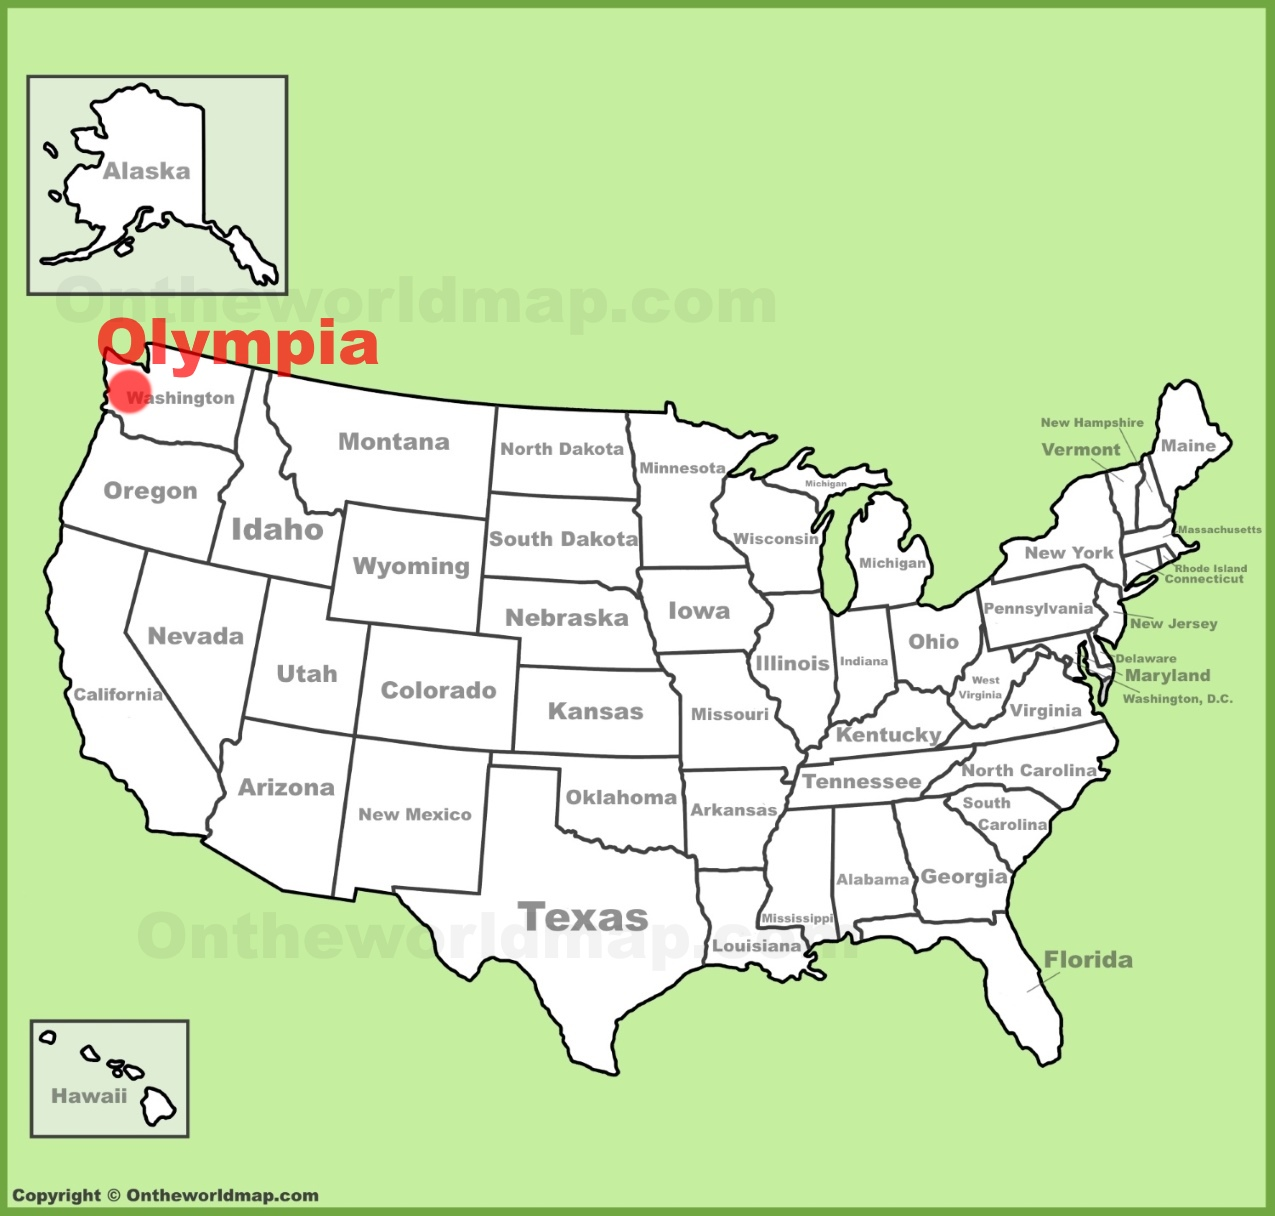 Olympia location on the US Map